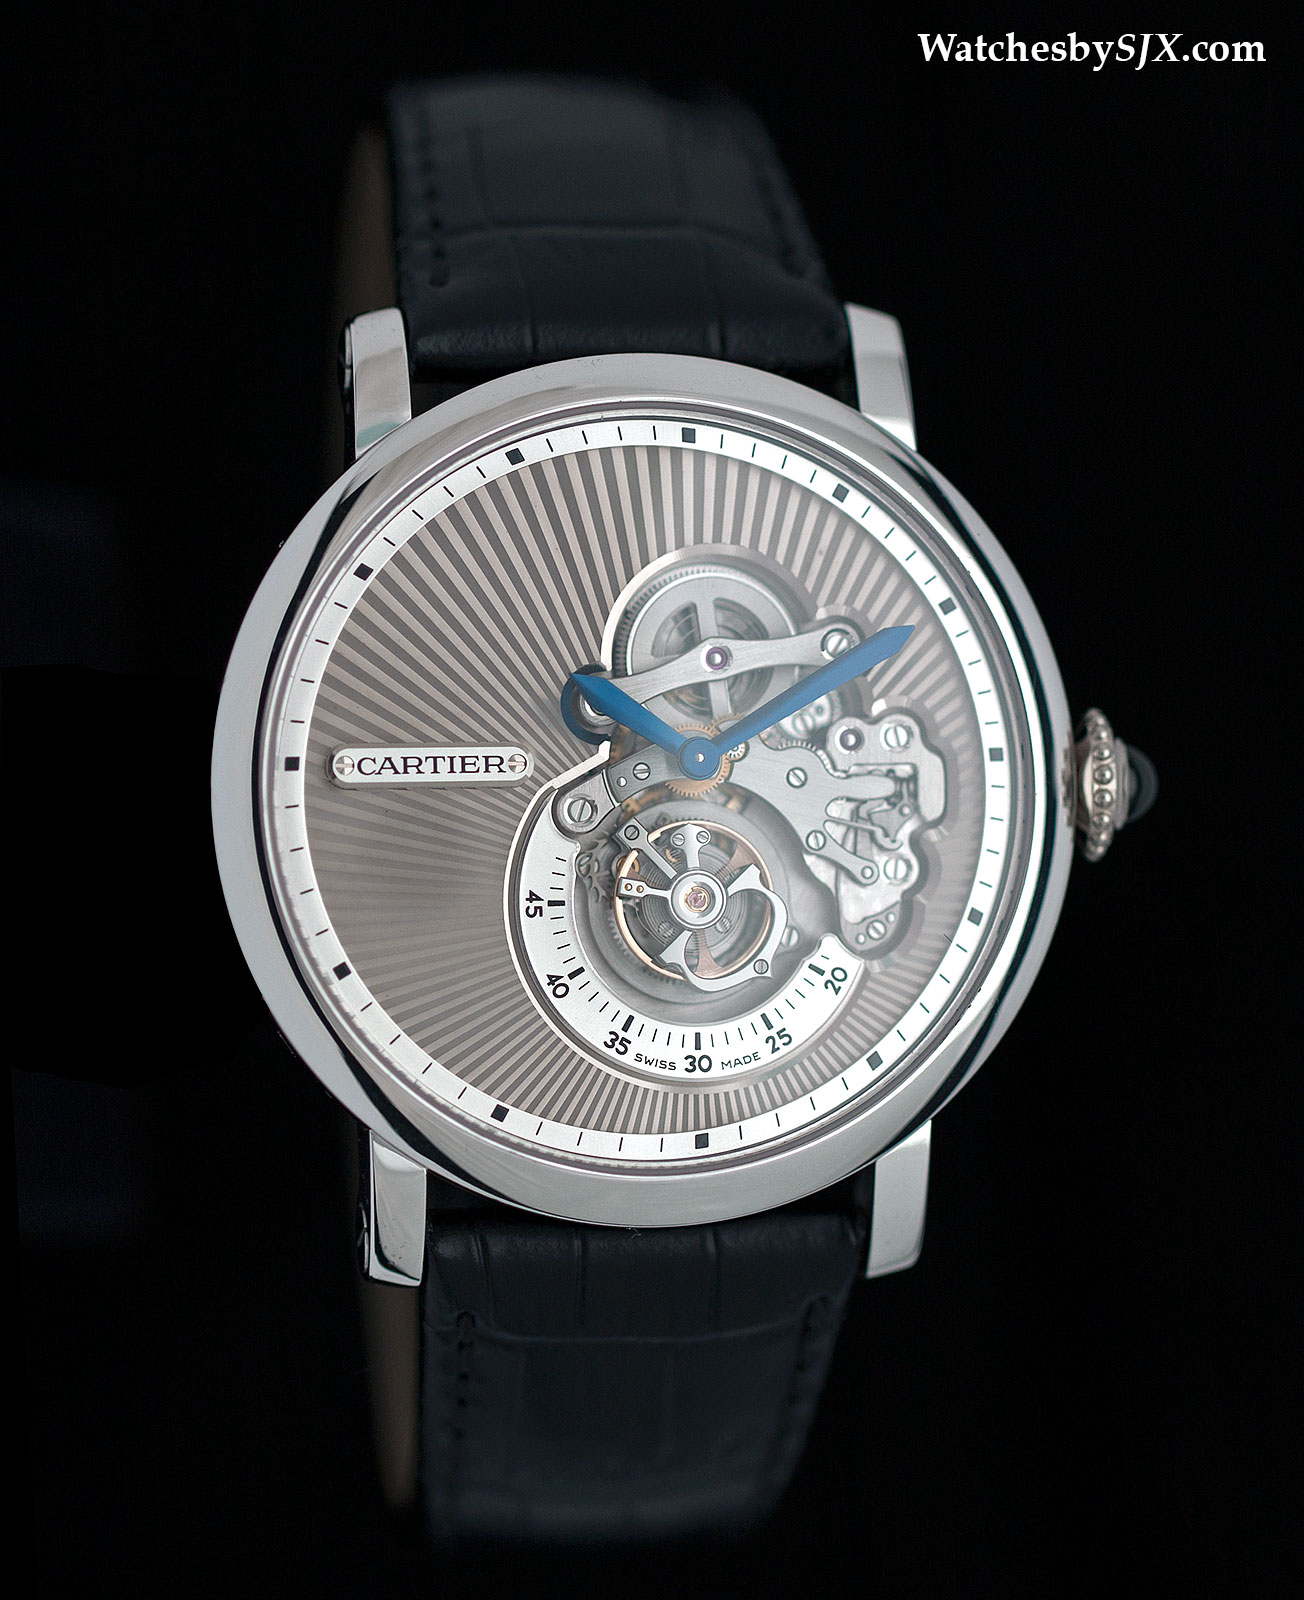 Rotonde-de-Cartier-Reversed-Tourbillon-watch-1